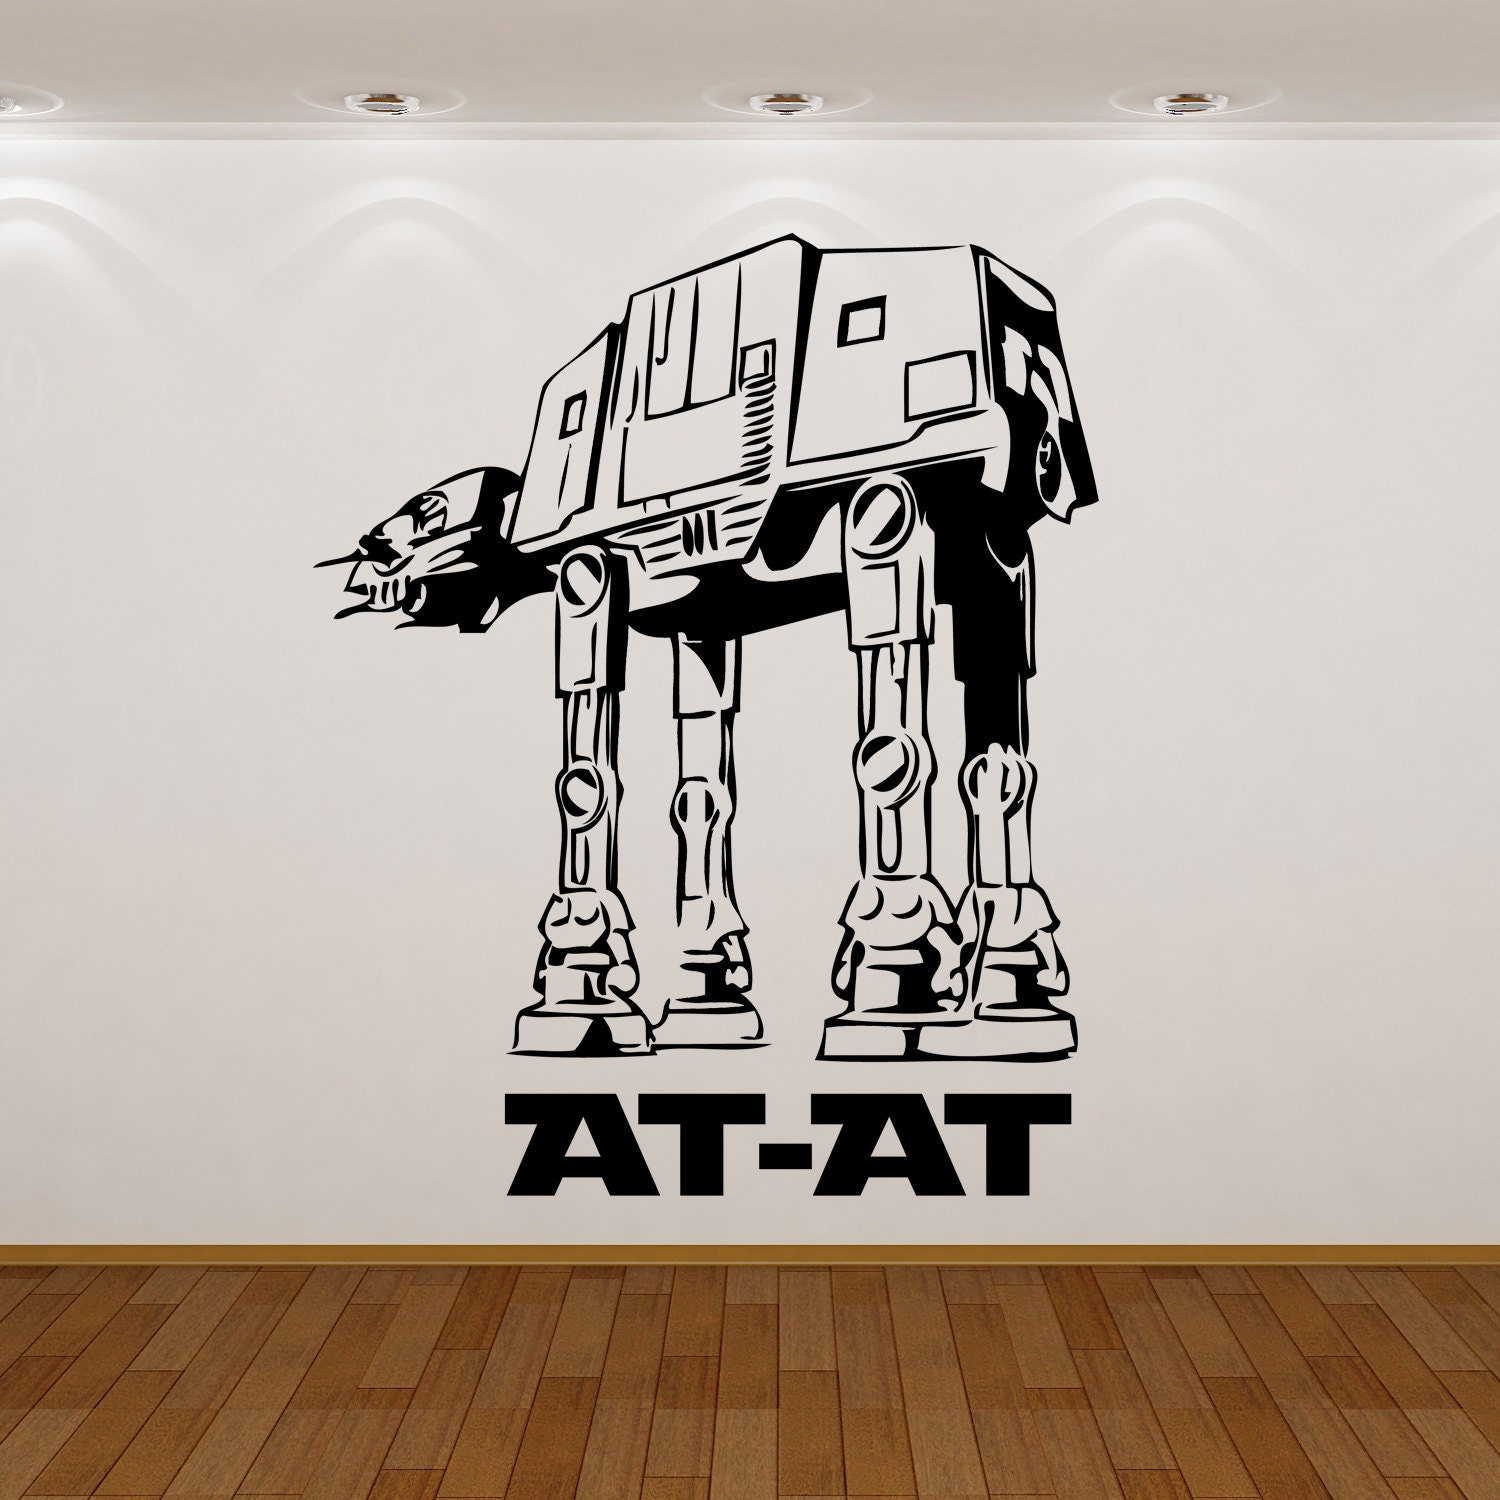 items similar to wars at at wall sticker decal vinyl for kid s or children bedroom